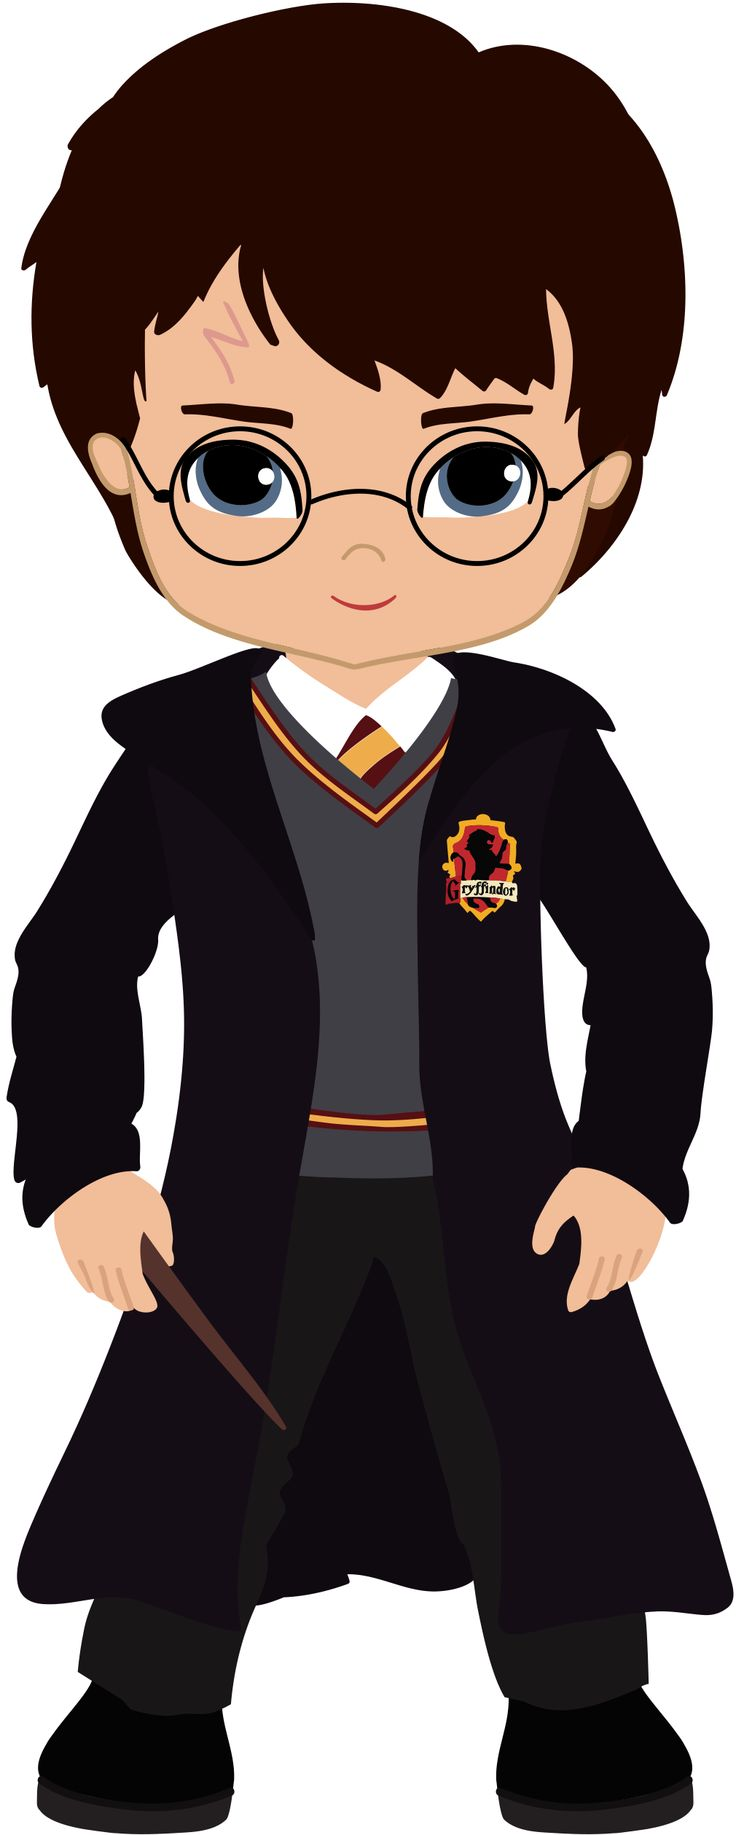 Harry potter character clipart vector royalty free 17 Best ideas about Harry Potter Clip Art on Pinterest | Harry ... vector royalty free